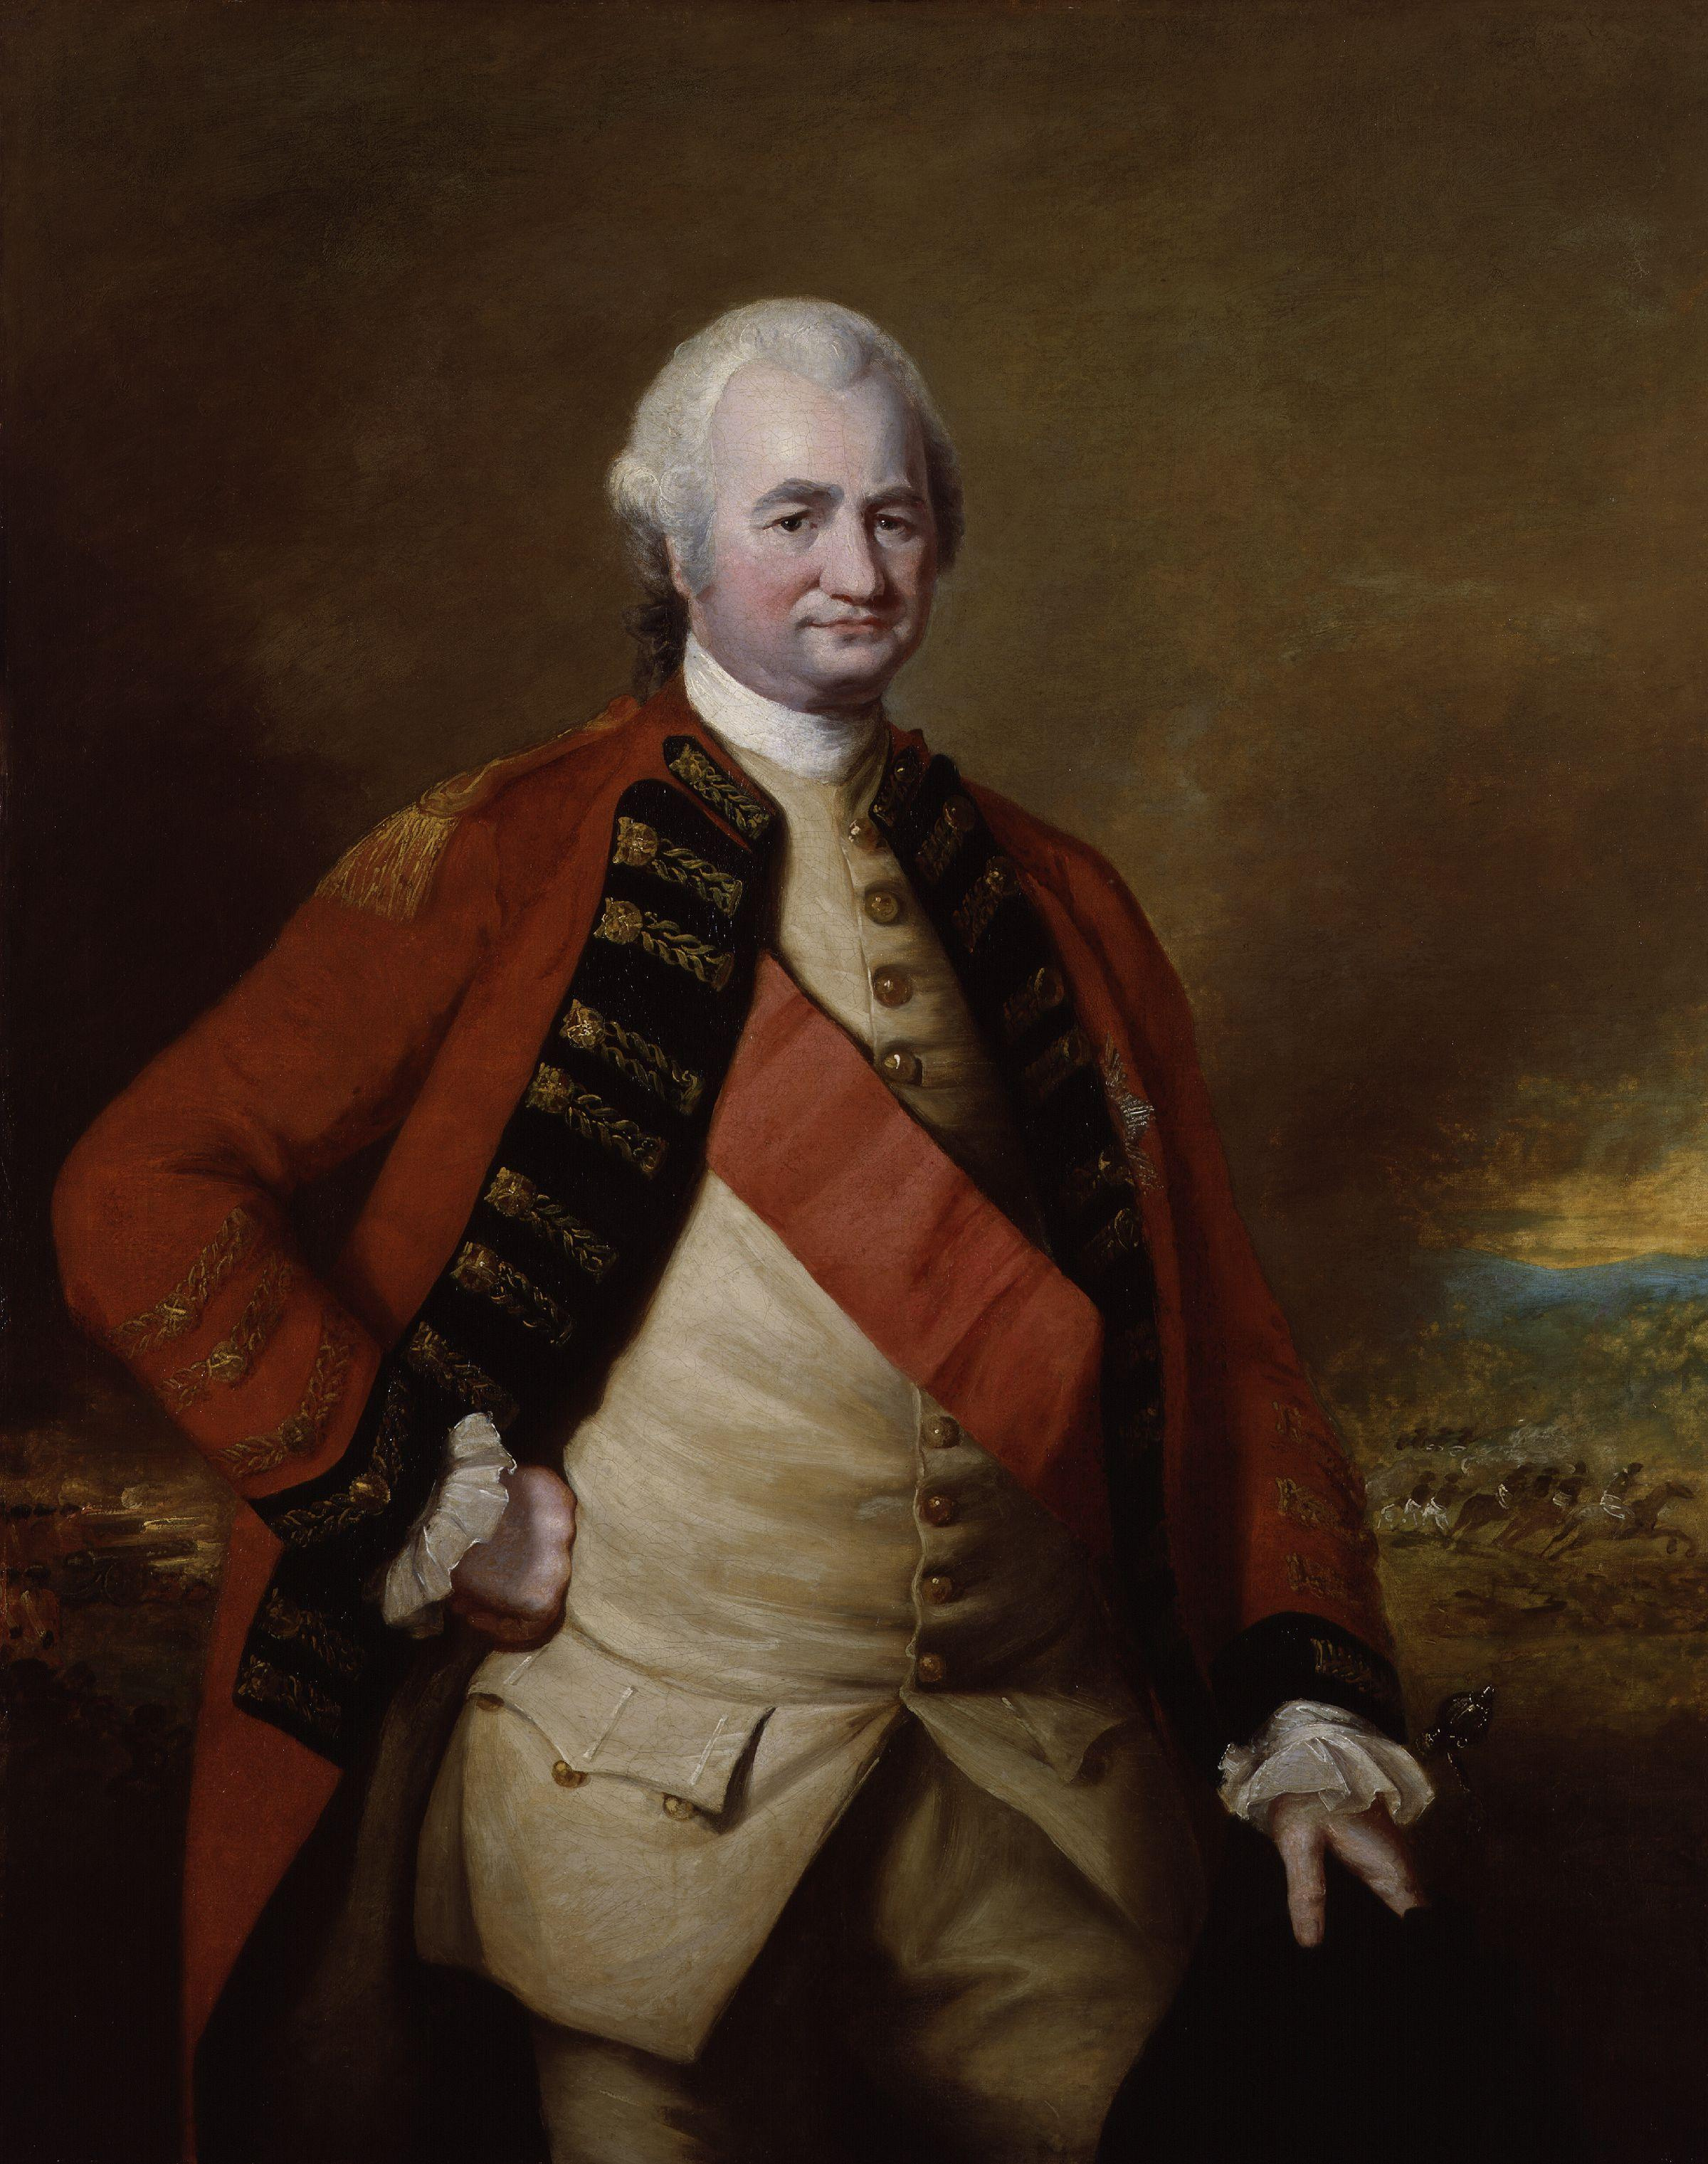 Robert Clive - Wikipedia